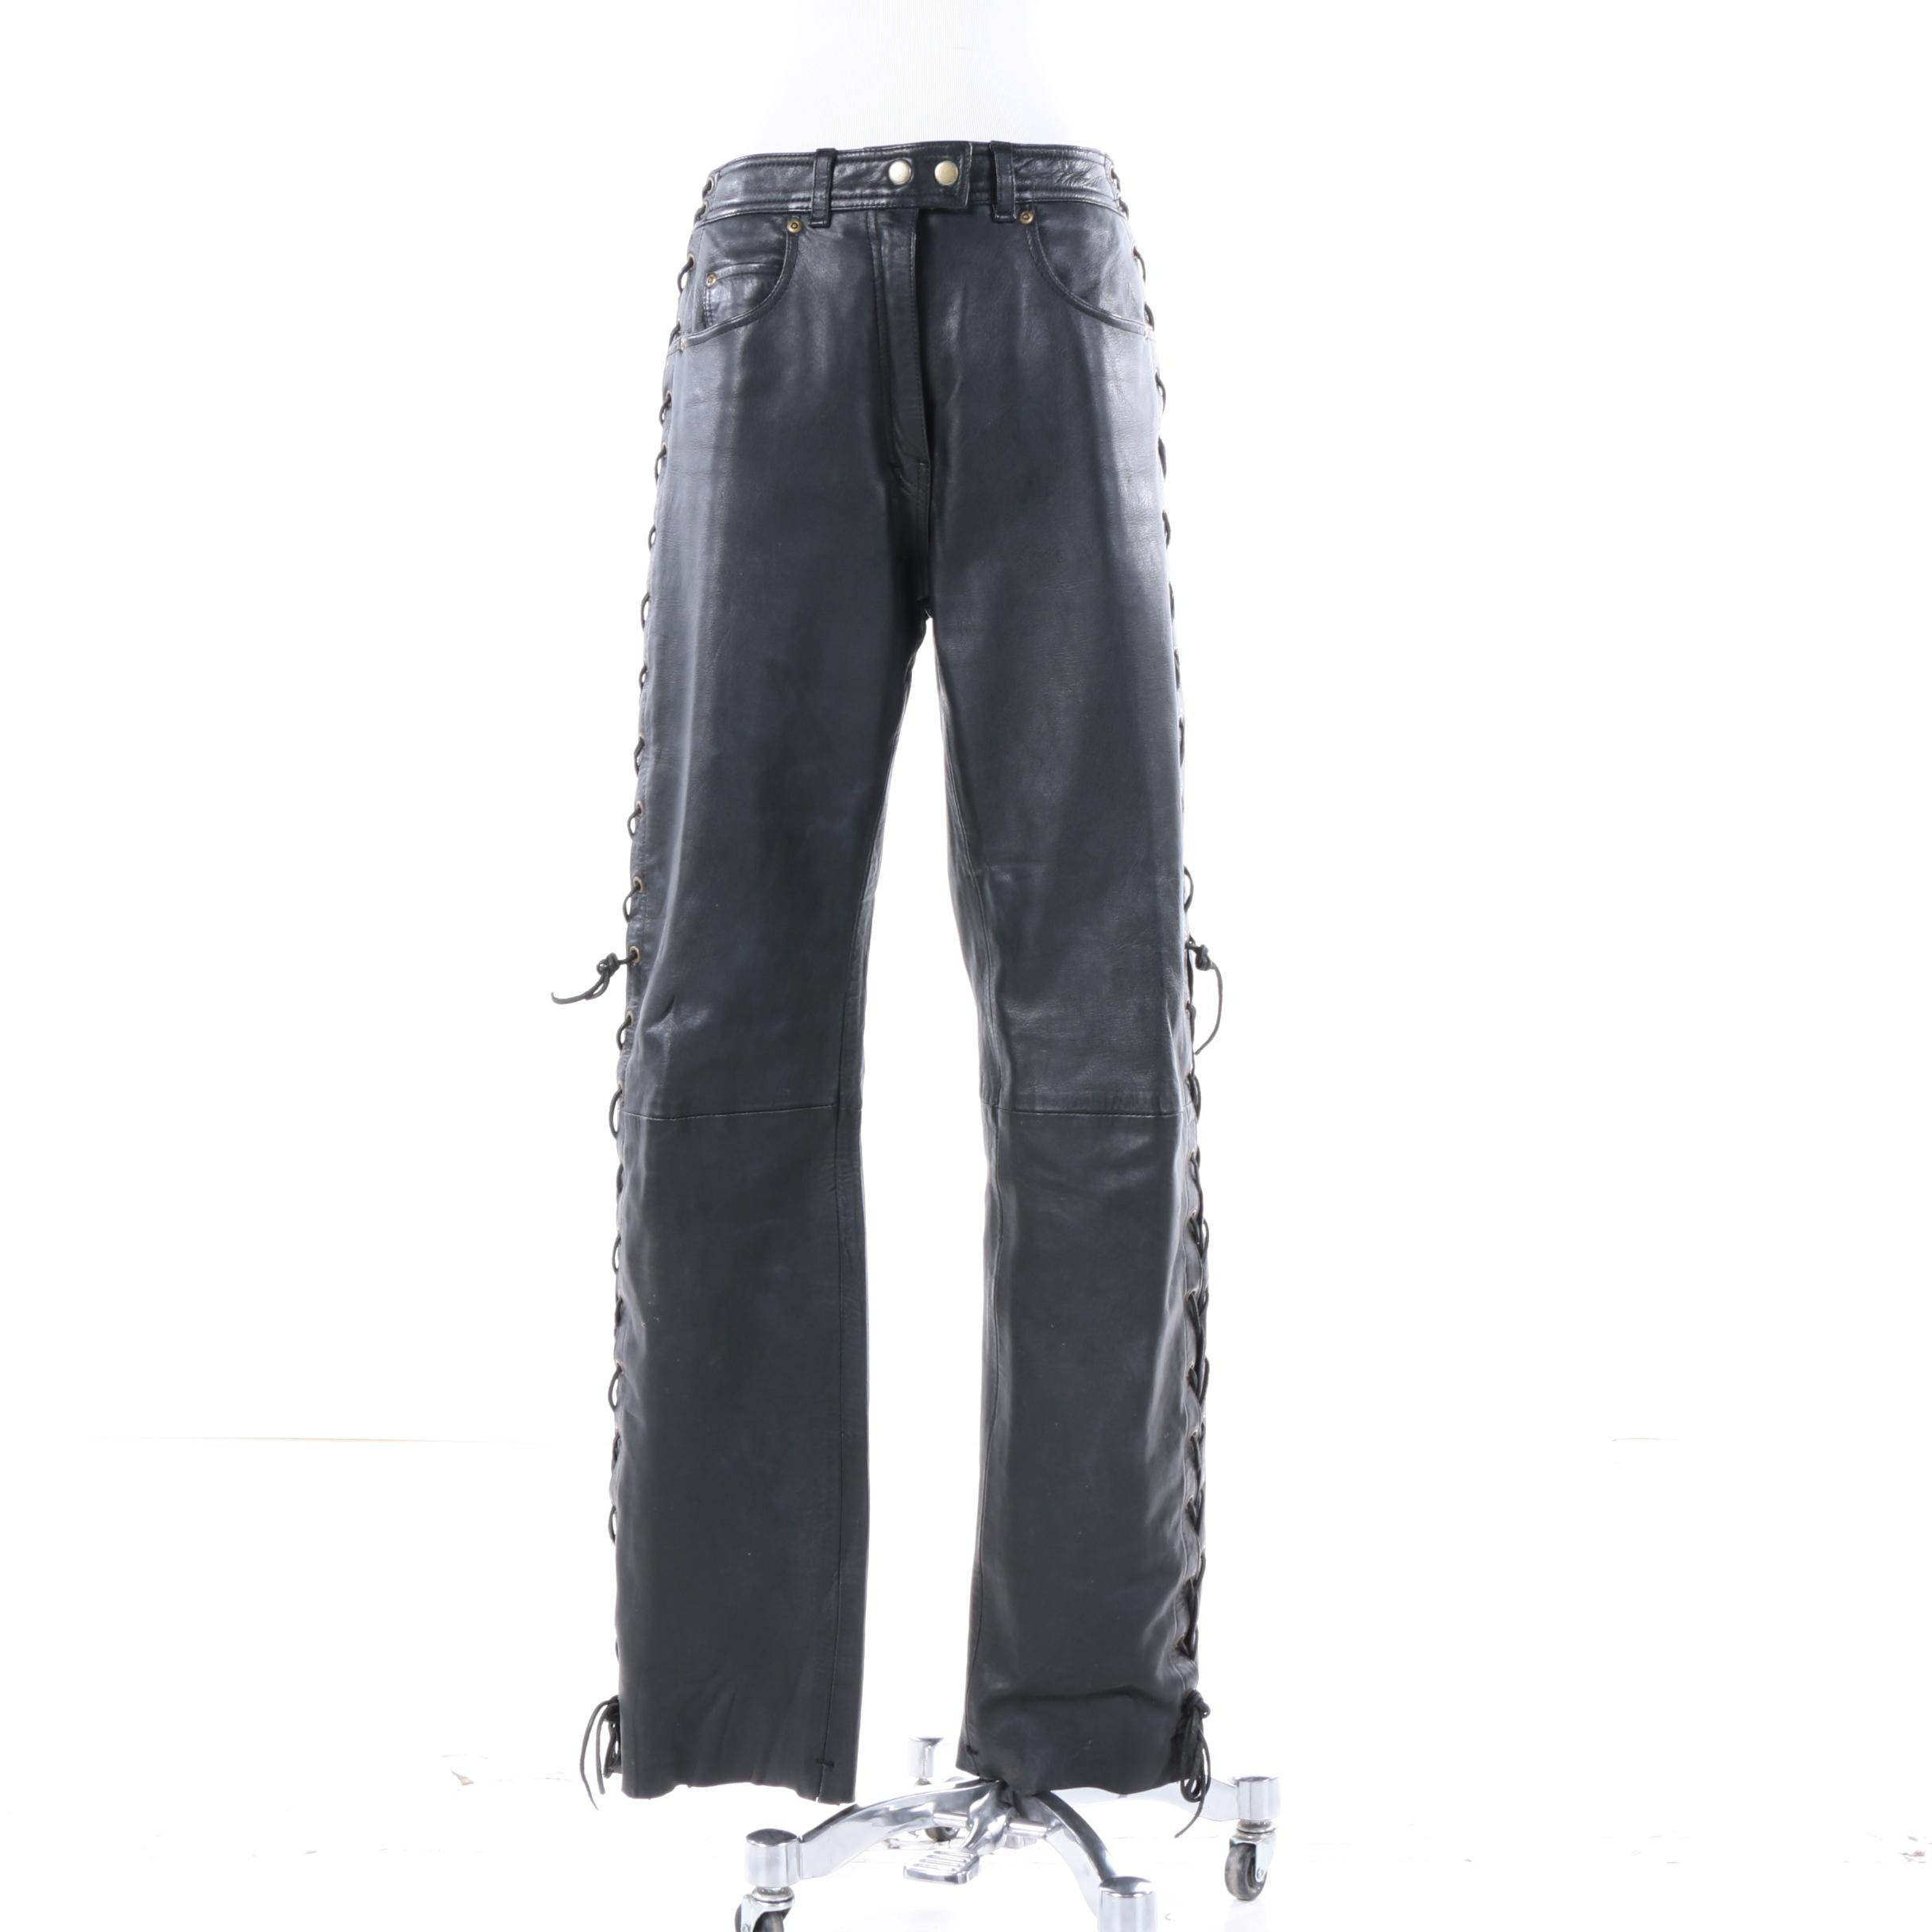 Women's Leather Gallery Black Leather Pants with Lace-Up Grommets